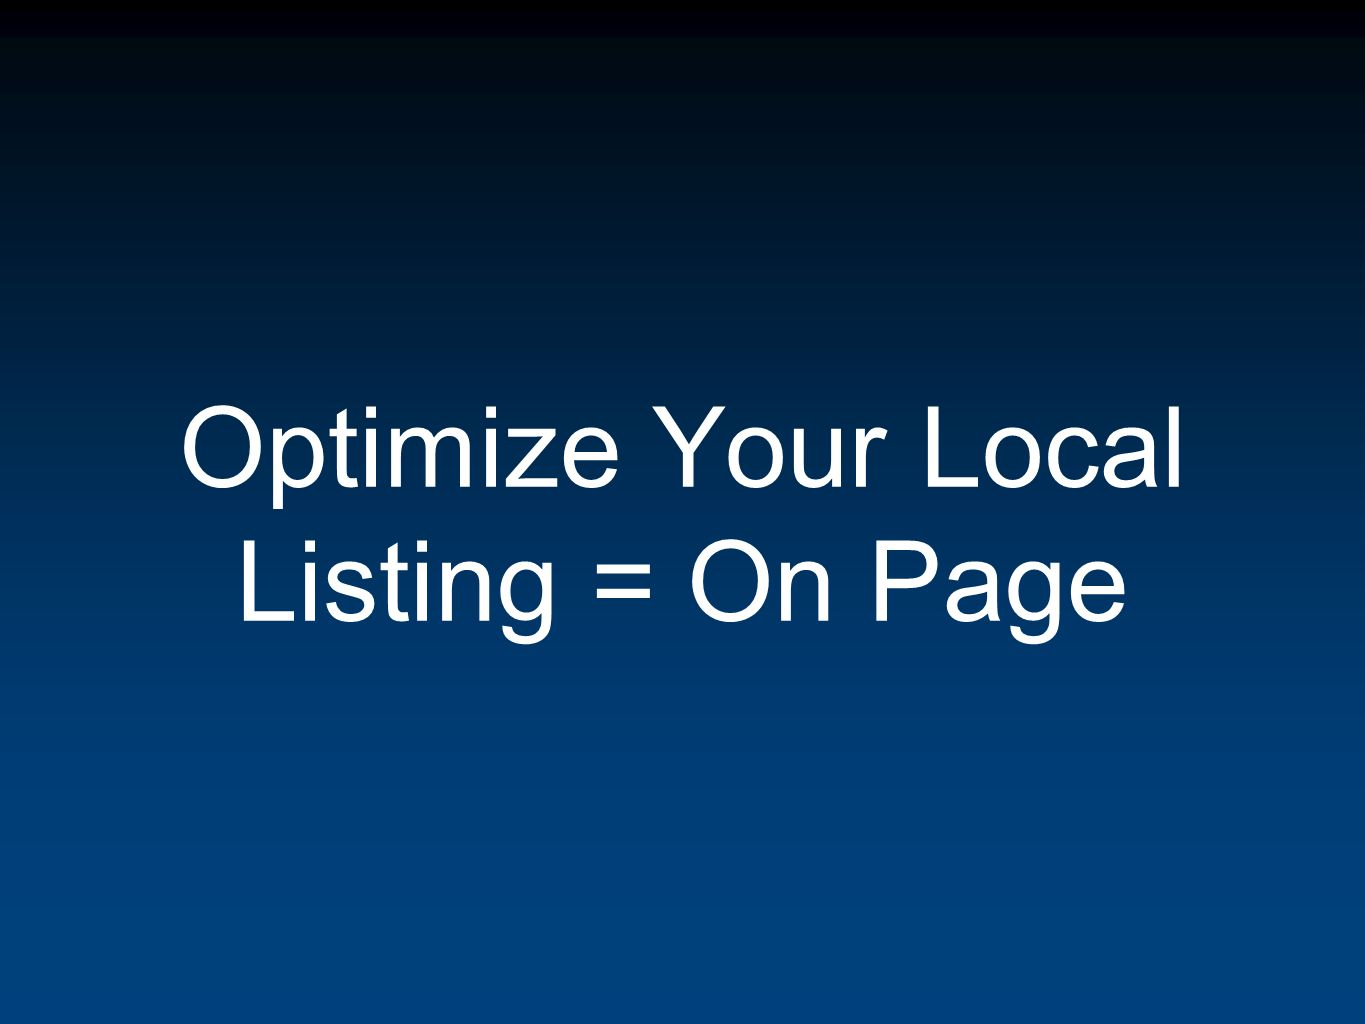 Optimize Your Local Listing = On Page